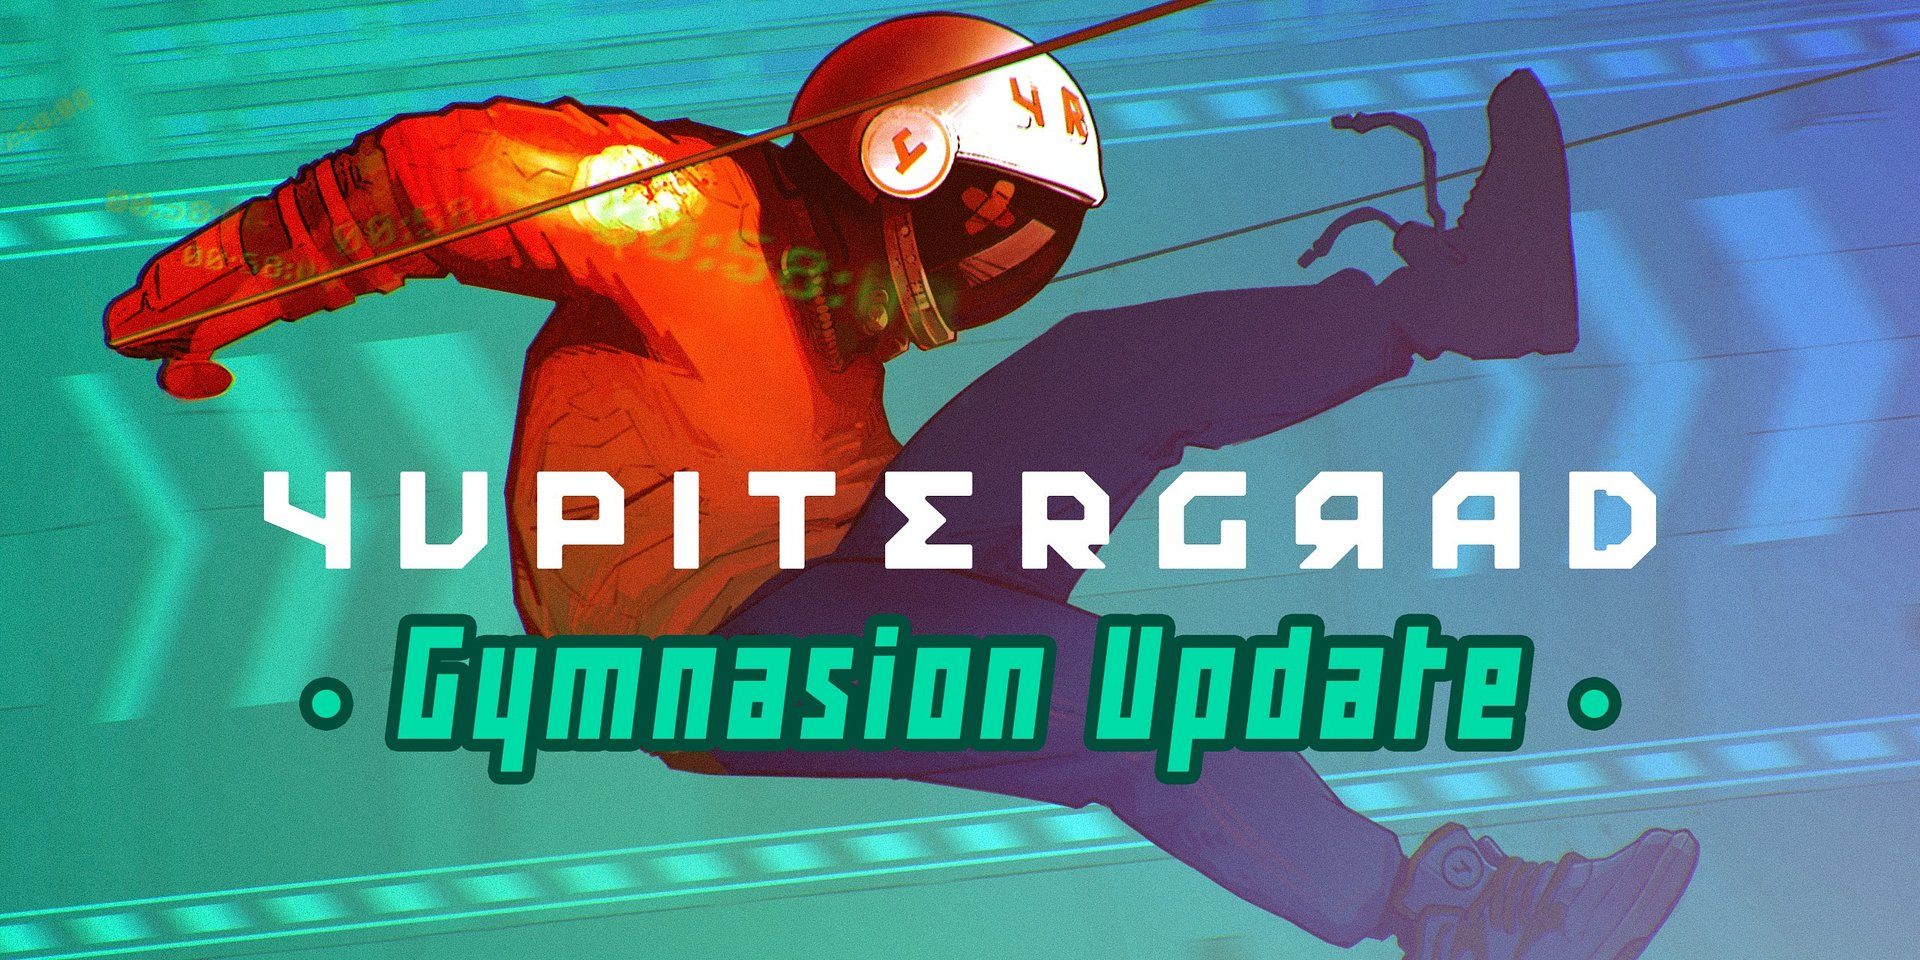 Gymnasion - free update for Yupitergrad adds a brand new game mode!